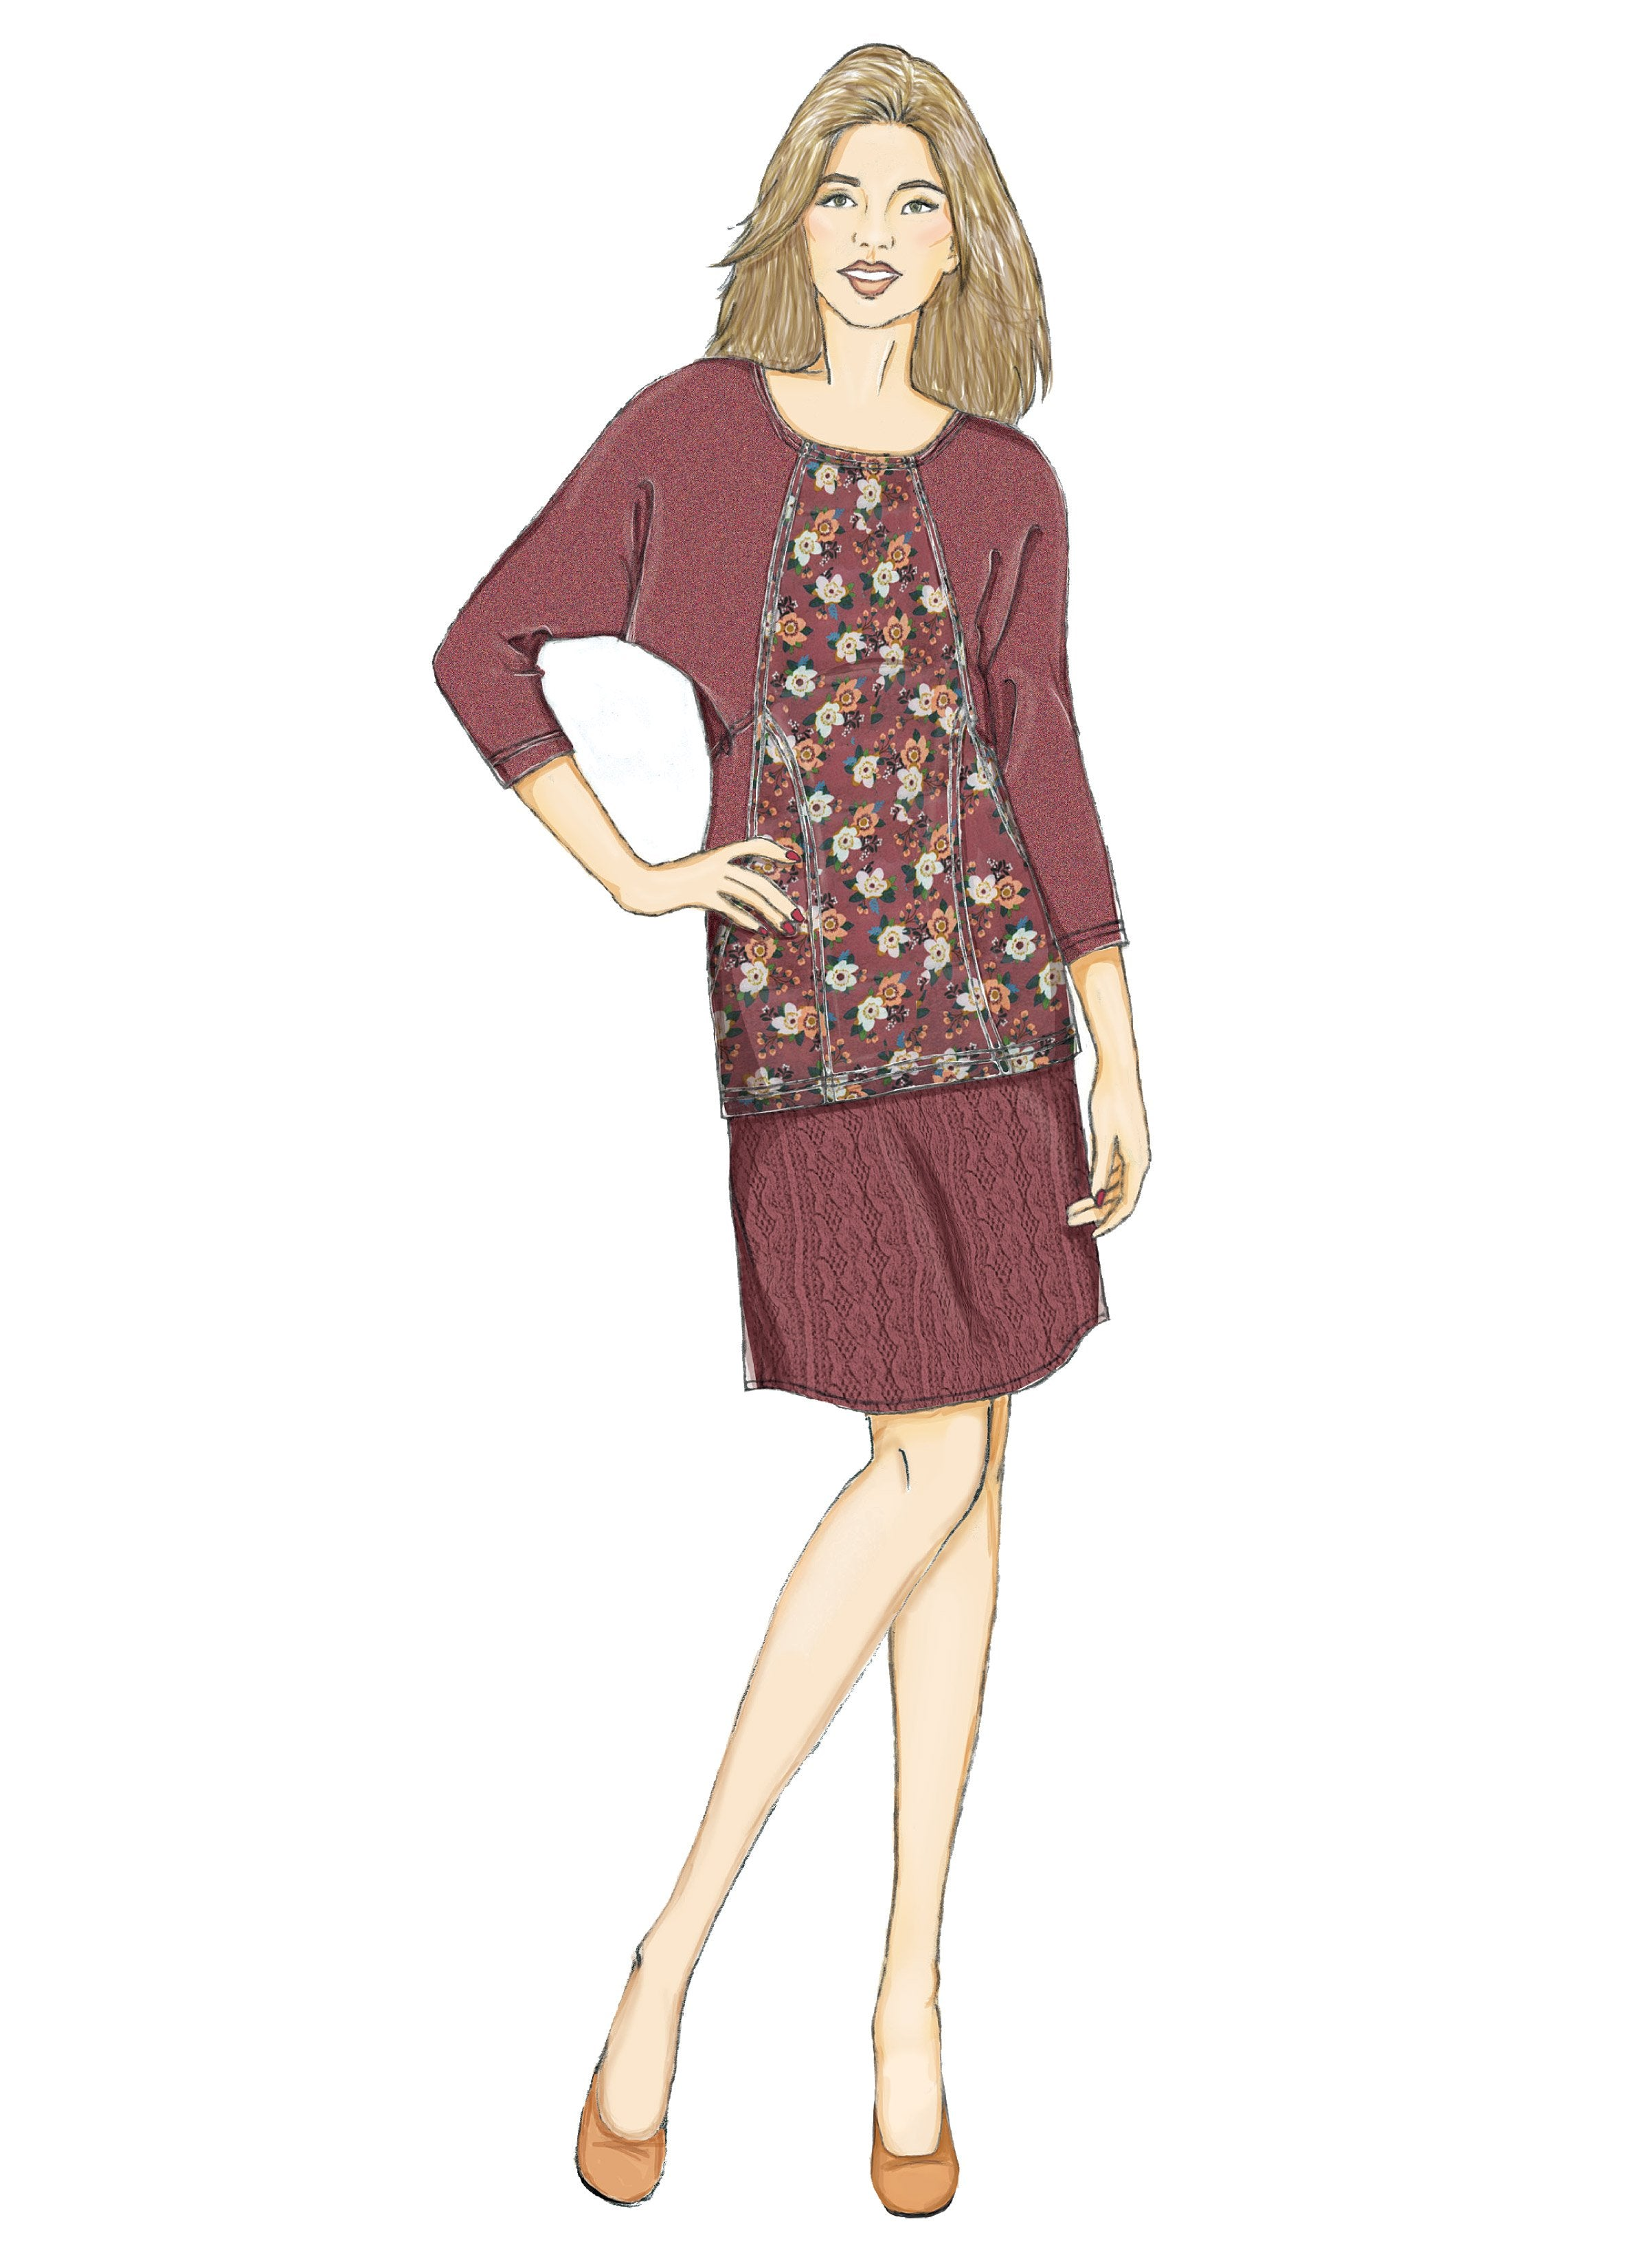 B6525 Misses' Knit Dress and Tunic, Skirt, and Pants